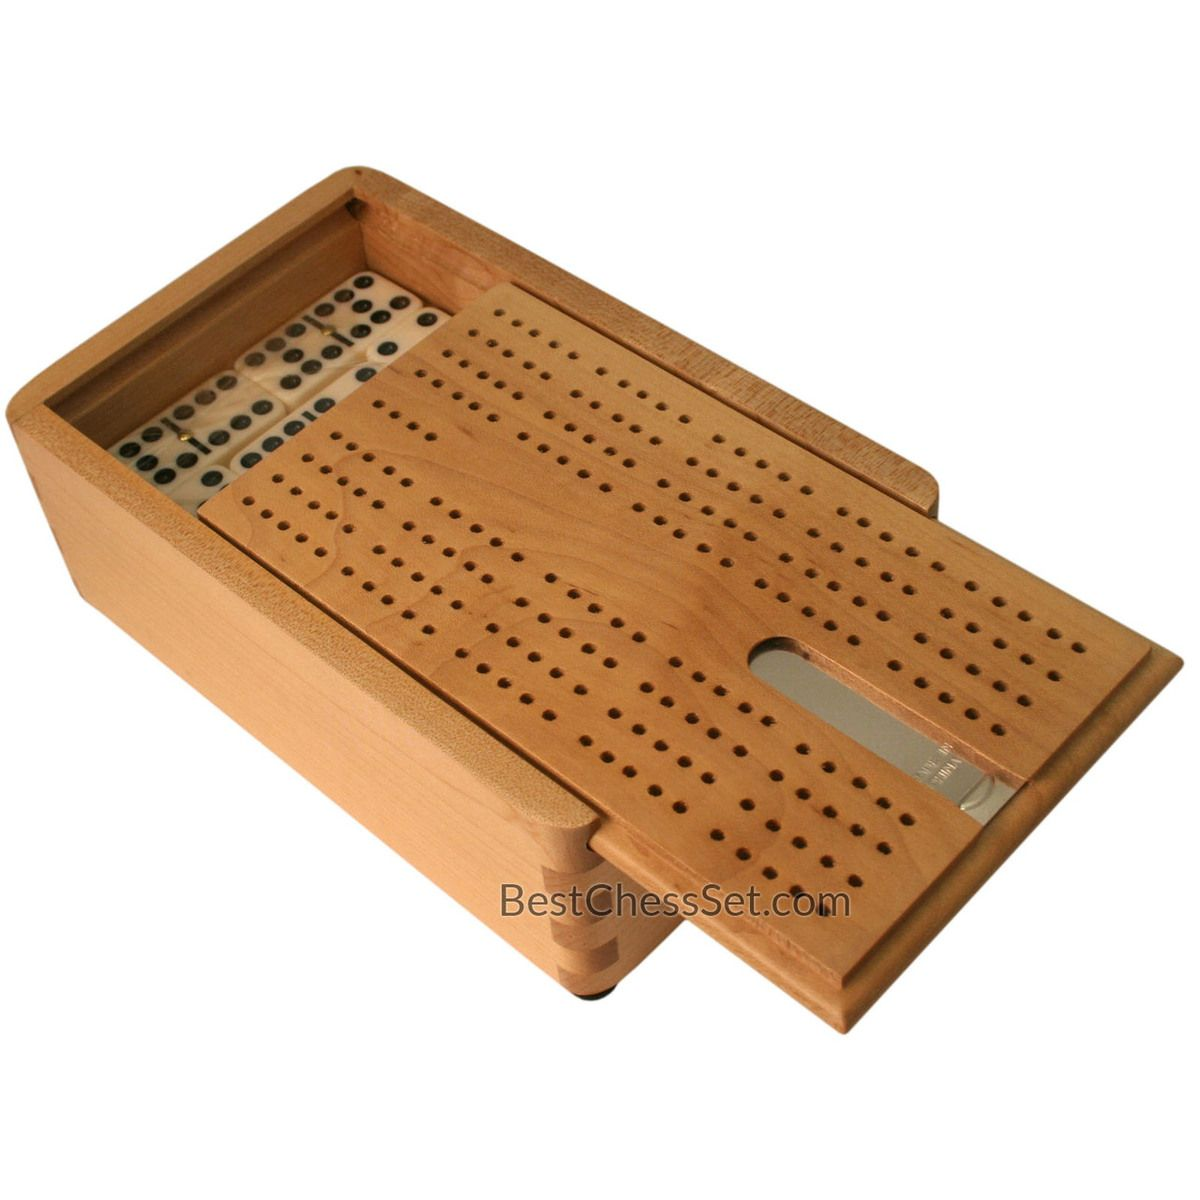 David Dominoes And Cribbage Board In Light Wood Domino Shaped Case Double Nine D9 Game Set 55 Urea Pieces Cribbage Cribbage Board Domino